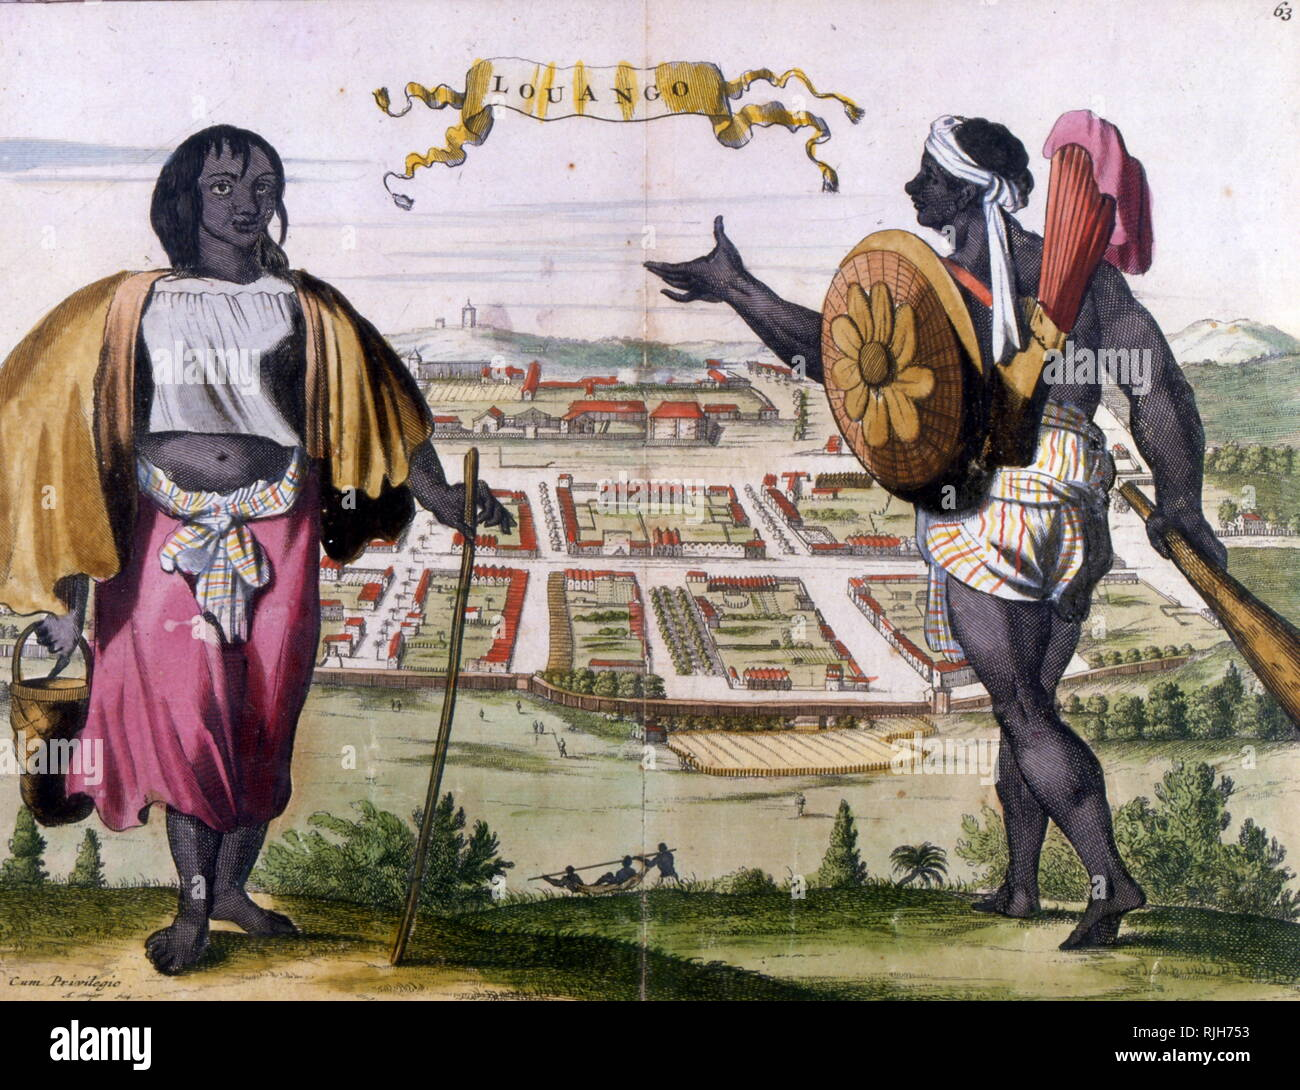 The Kingdom of Loango was a pre-colonial African state, during approximately the 16th to 19th centuries in what is now the western part of the Republic of the Congo. Print 19th century - Stock Image